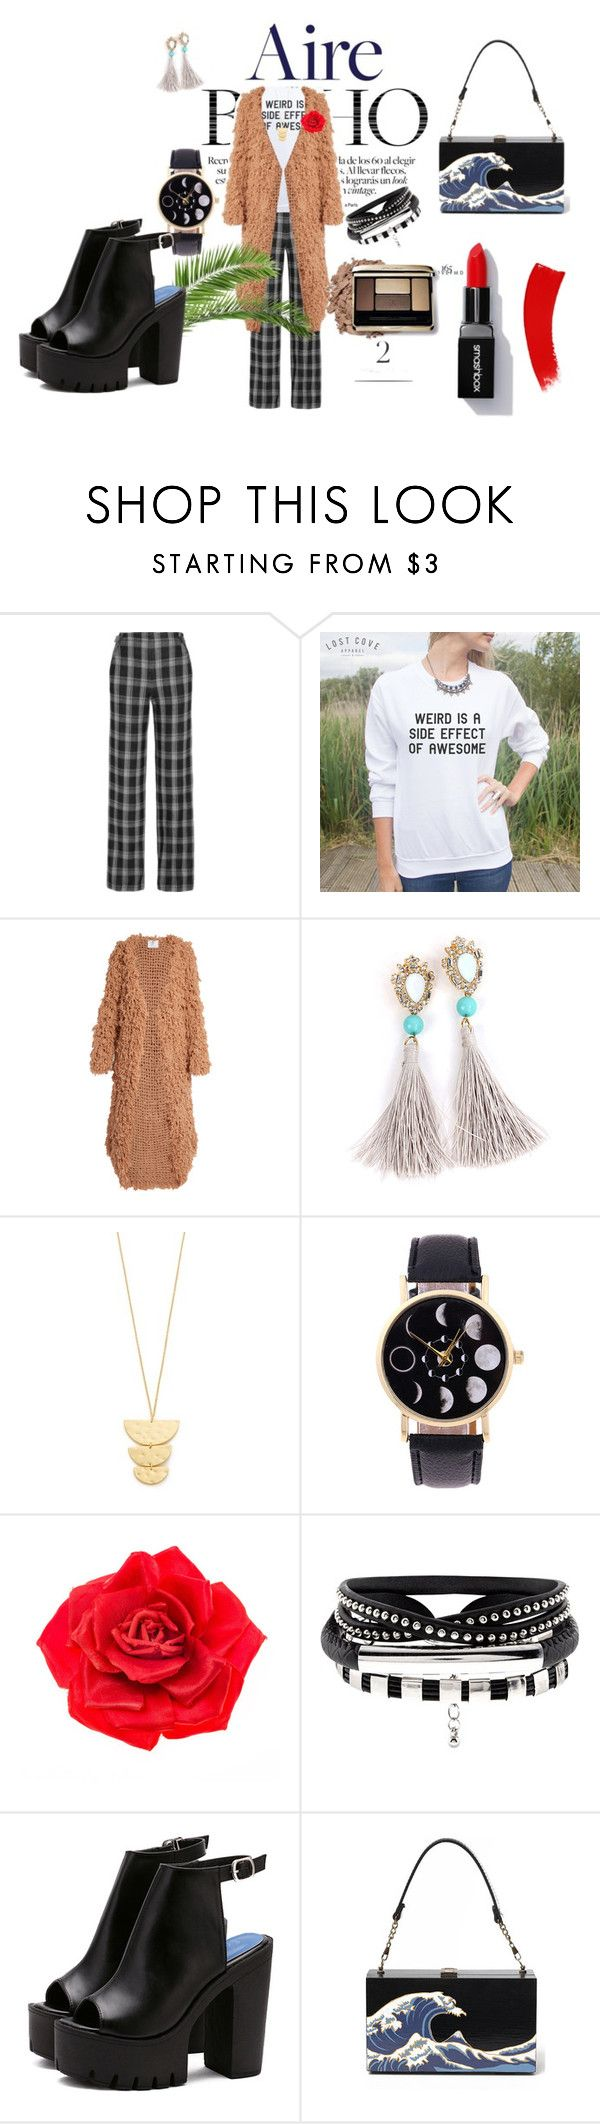 """""""Very Strange Outfit"""" by crystal-goodman-dxxv ❤ liked on Polyvore featuring Proenza Schouler, Ryan Roche, Gorjana, Johnny Loves Rosie, weird and weirdisasideeffectofawesomeness"""